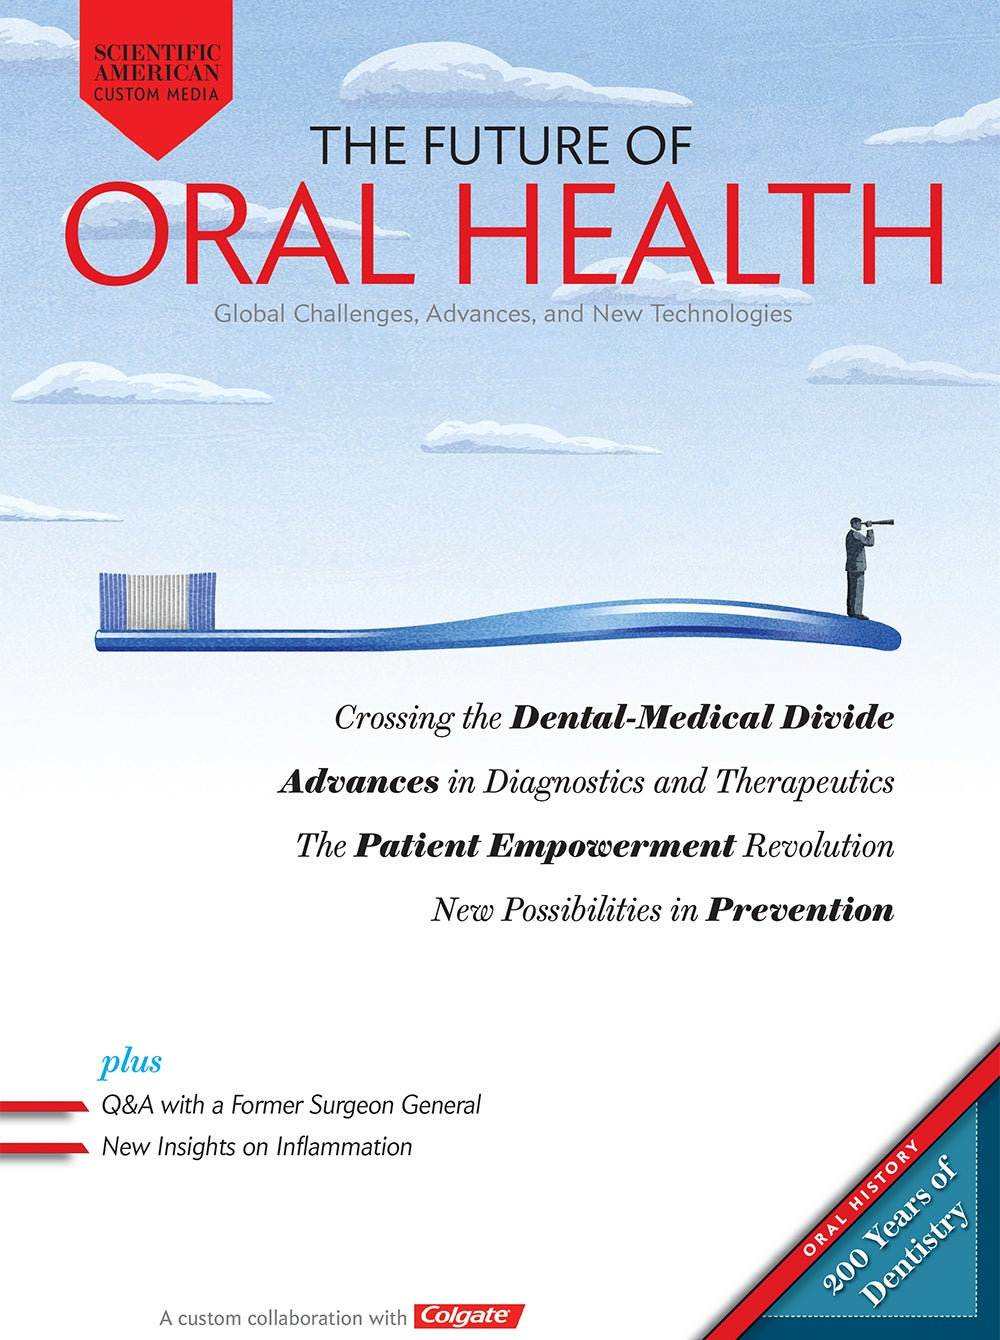 The Future of Oral Health: Global Challenges, Advances, and New Technologies